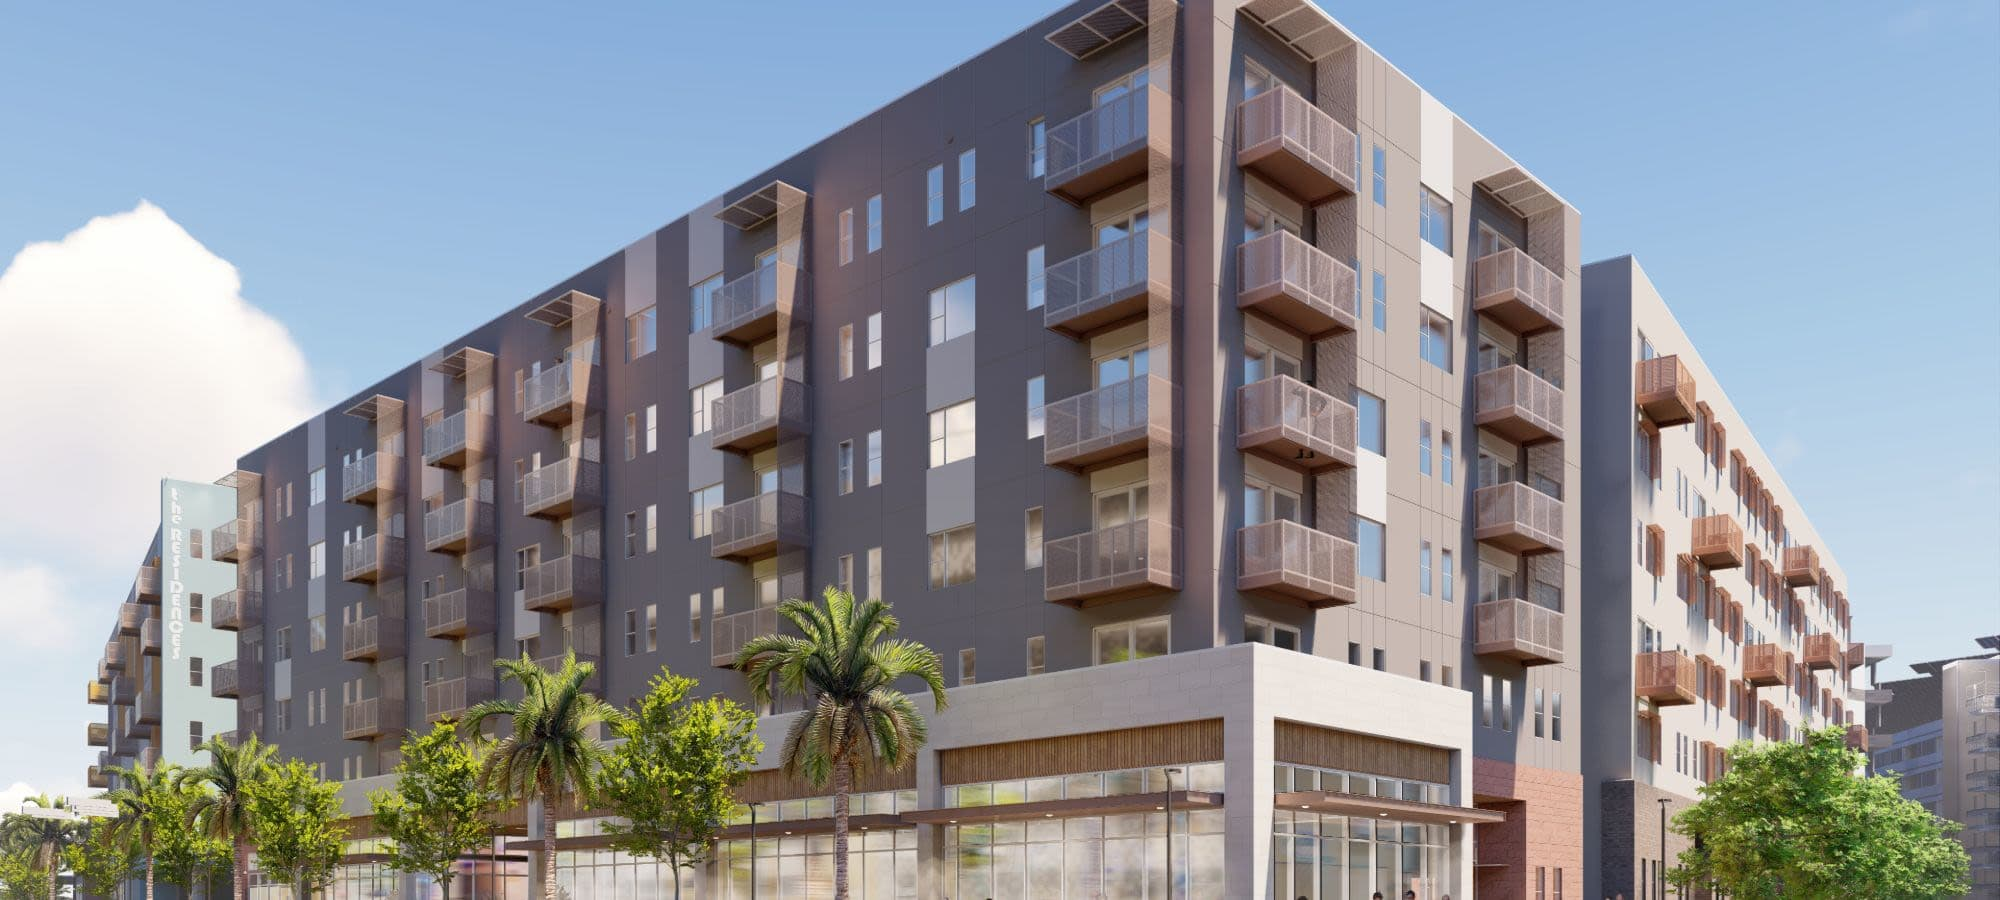 Rendering of the exterior of The Piedmont in Tempe, Arizona